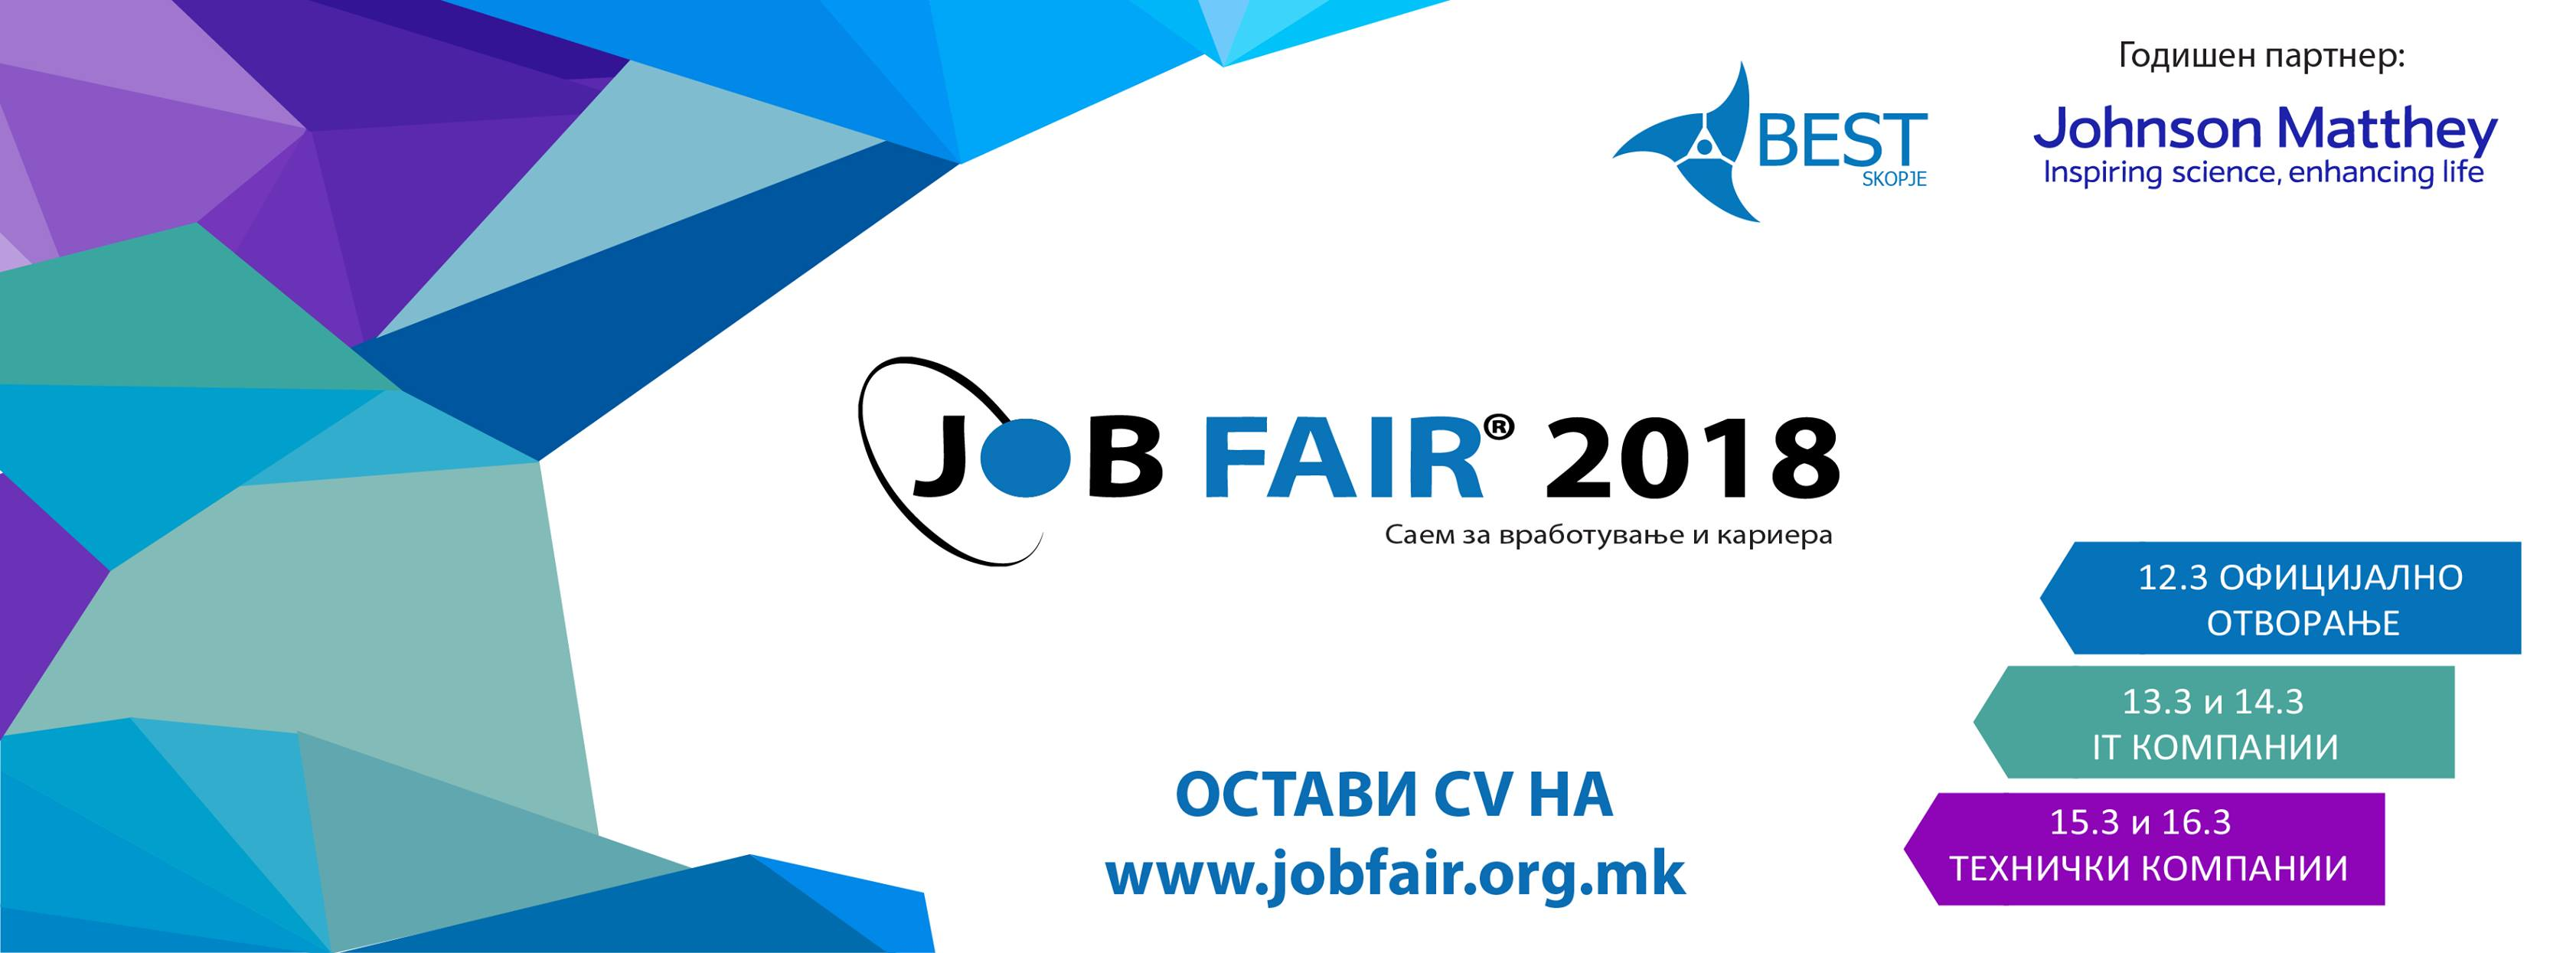 HASELT @ Job Fair 2018